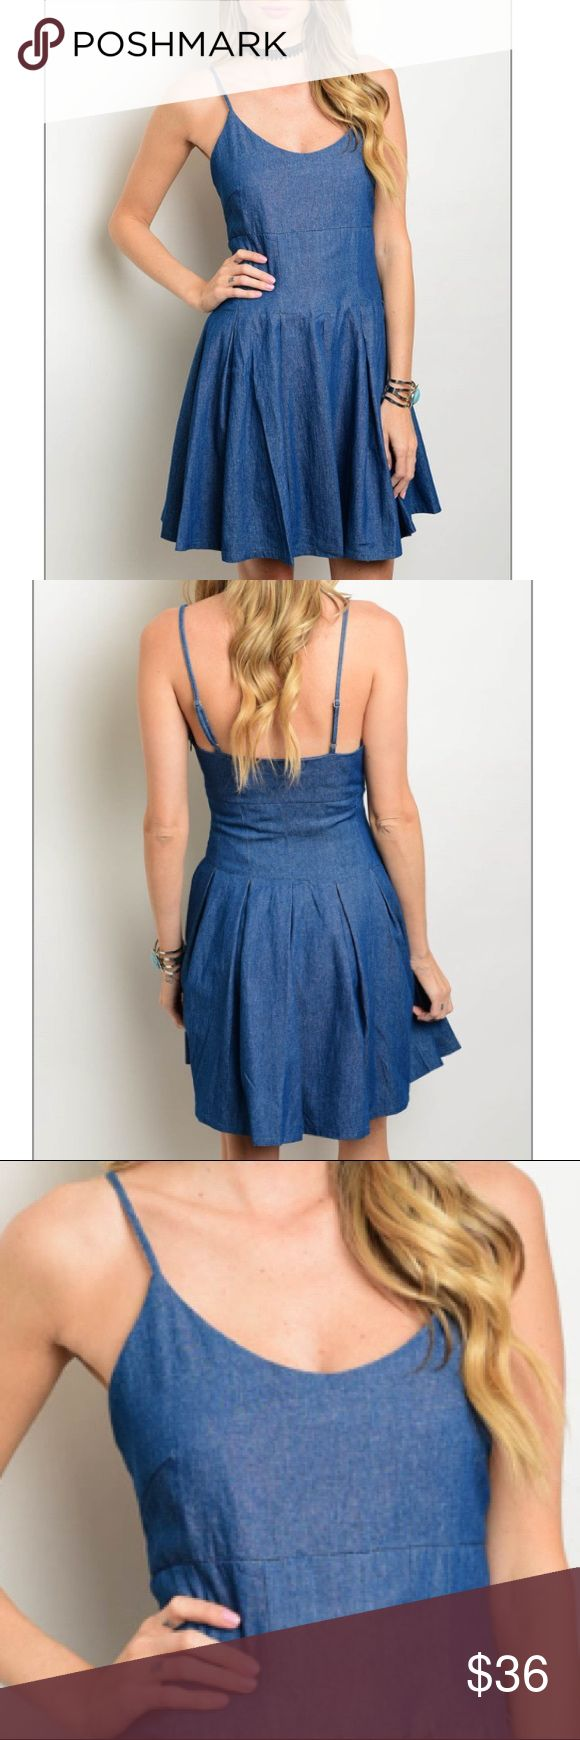 """Blue denim mini dress w/spaghetti straps This denim dress features spaghetti straps, a round neckline and an a-line silhouette. Perfect with flats heels, sneakers or sandals. Fabric Content: 100% COTTON Size Small measurements: L: 35"""" B: 34"""" W: 34"""" Trendy boutique Dresses Mini"""